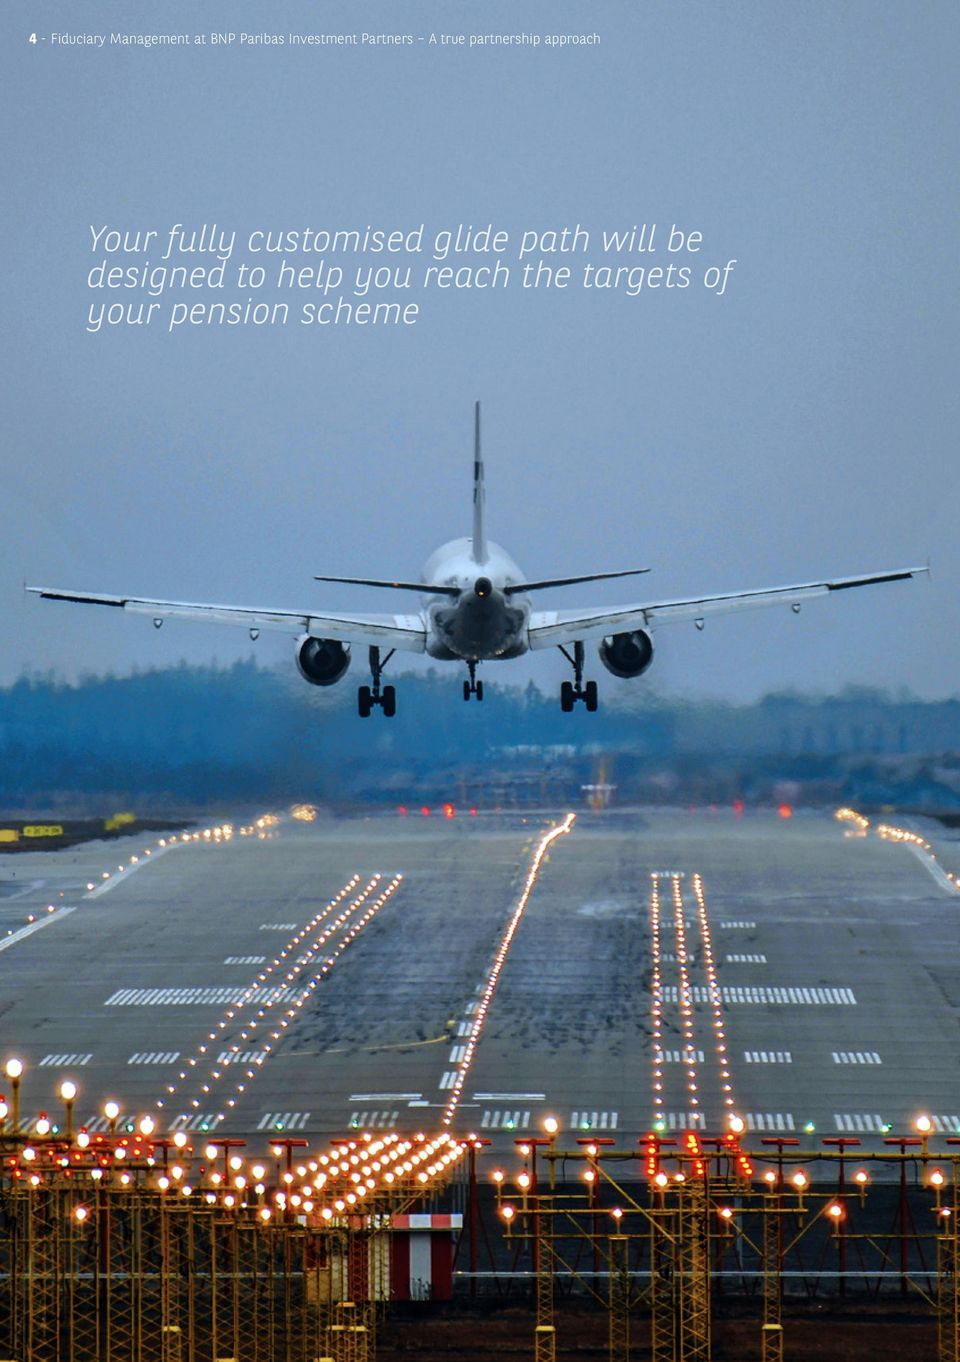 Your fully customised glide path will be